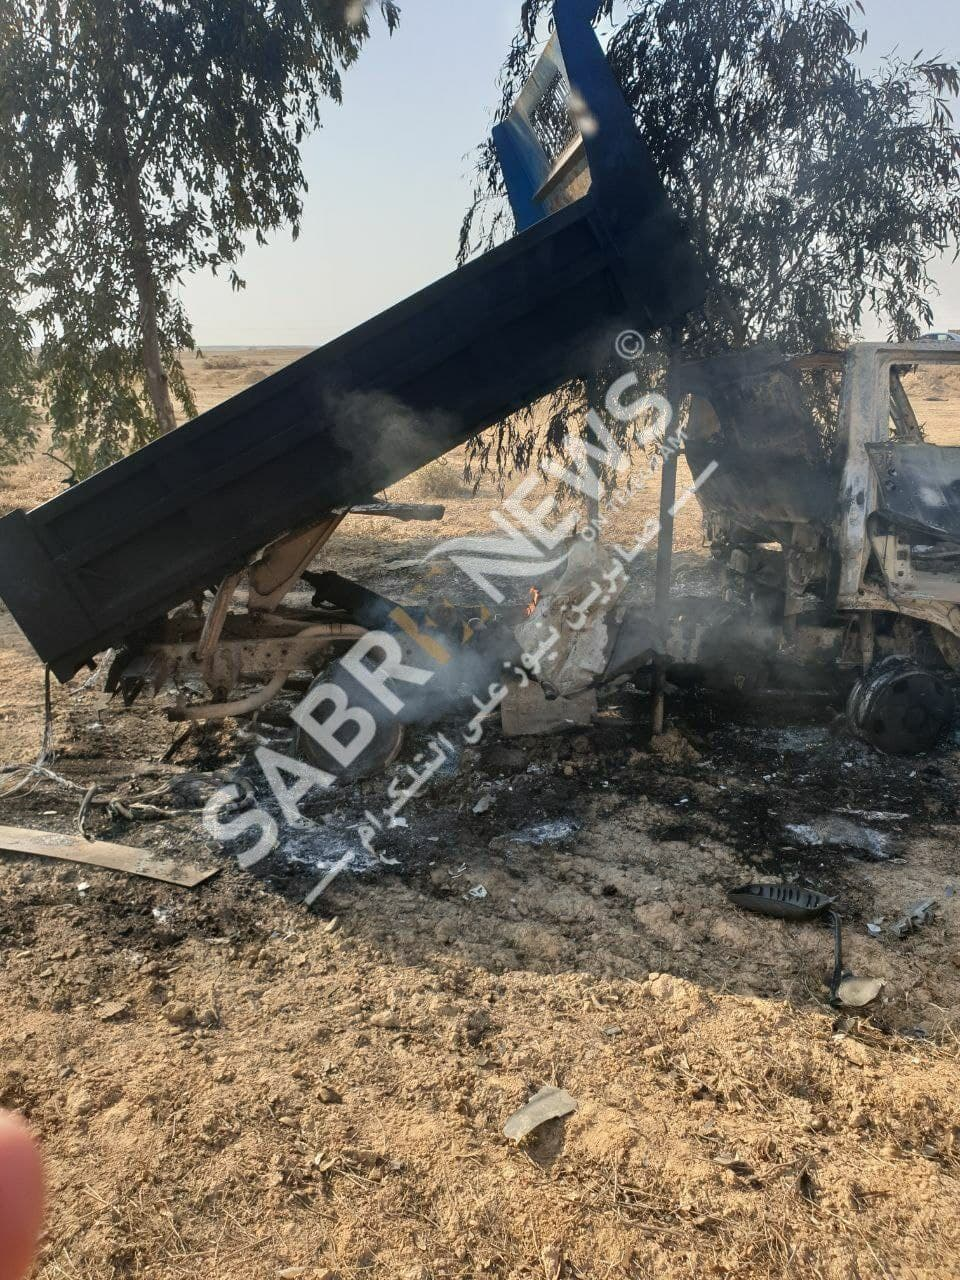 Rocket Salvo Hits Ain al-Asad Air Base In Iraq, Damage And Casualties Reported